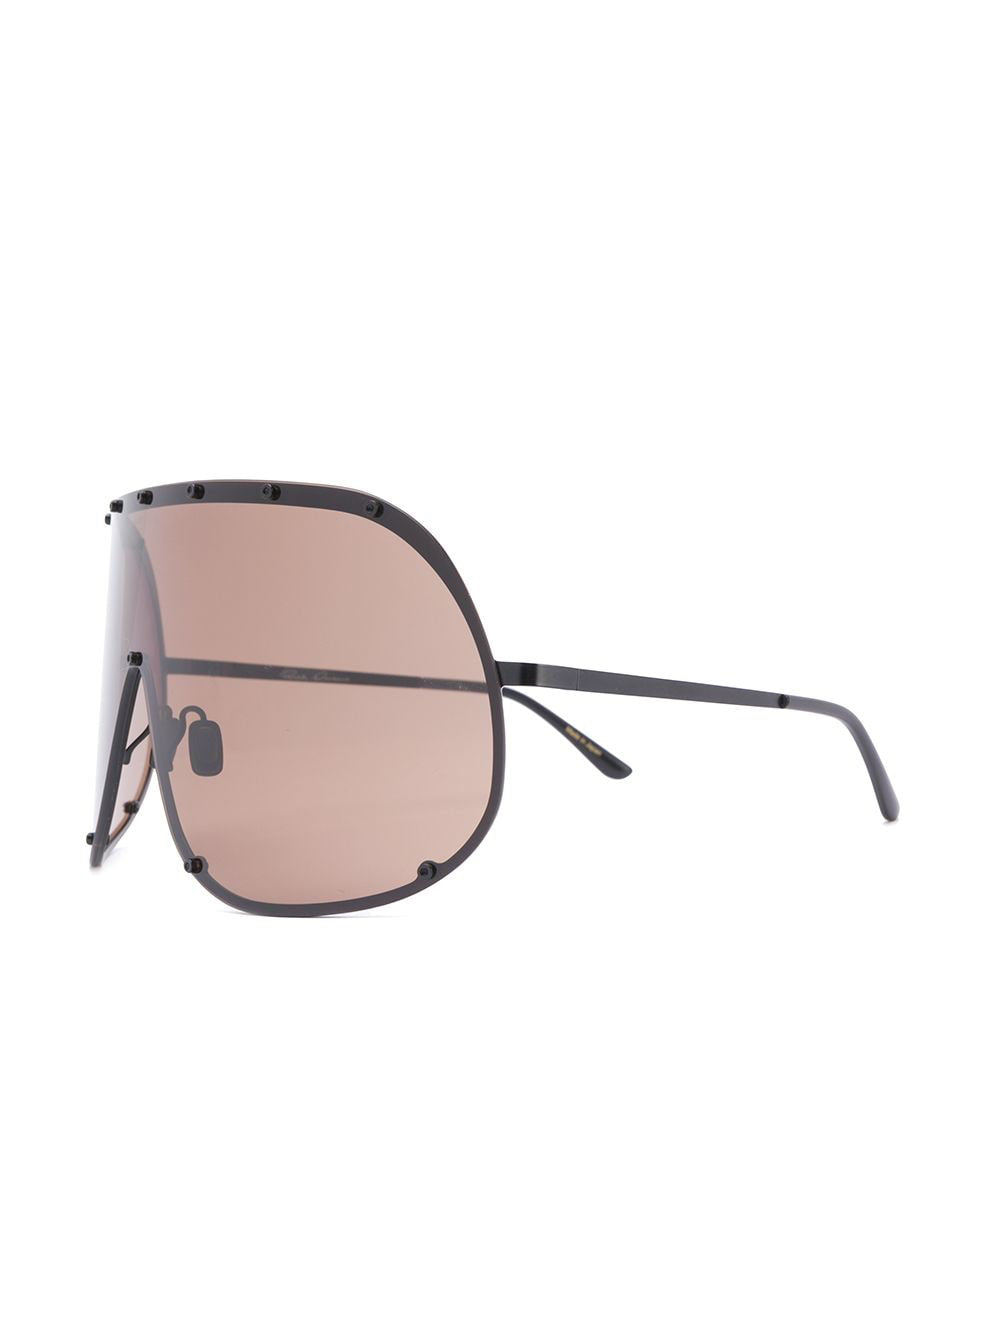 RICK OWENS SHIELD SUNGLASSES GBLKBR